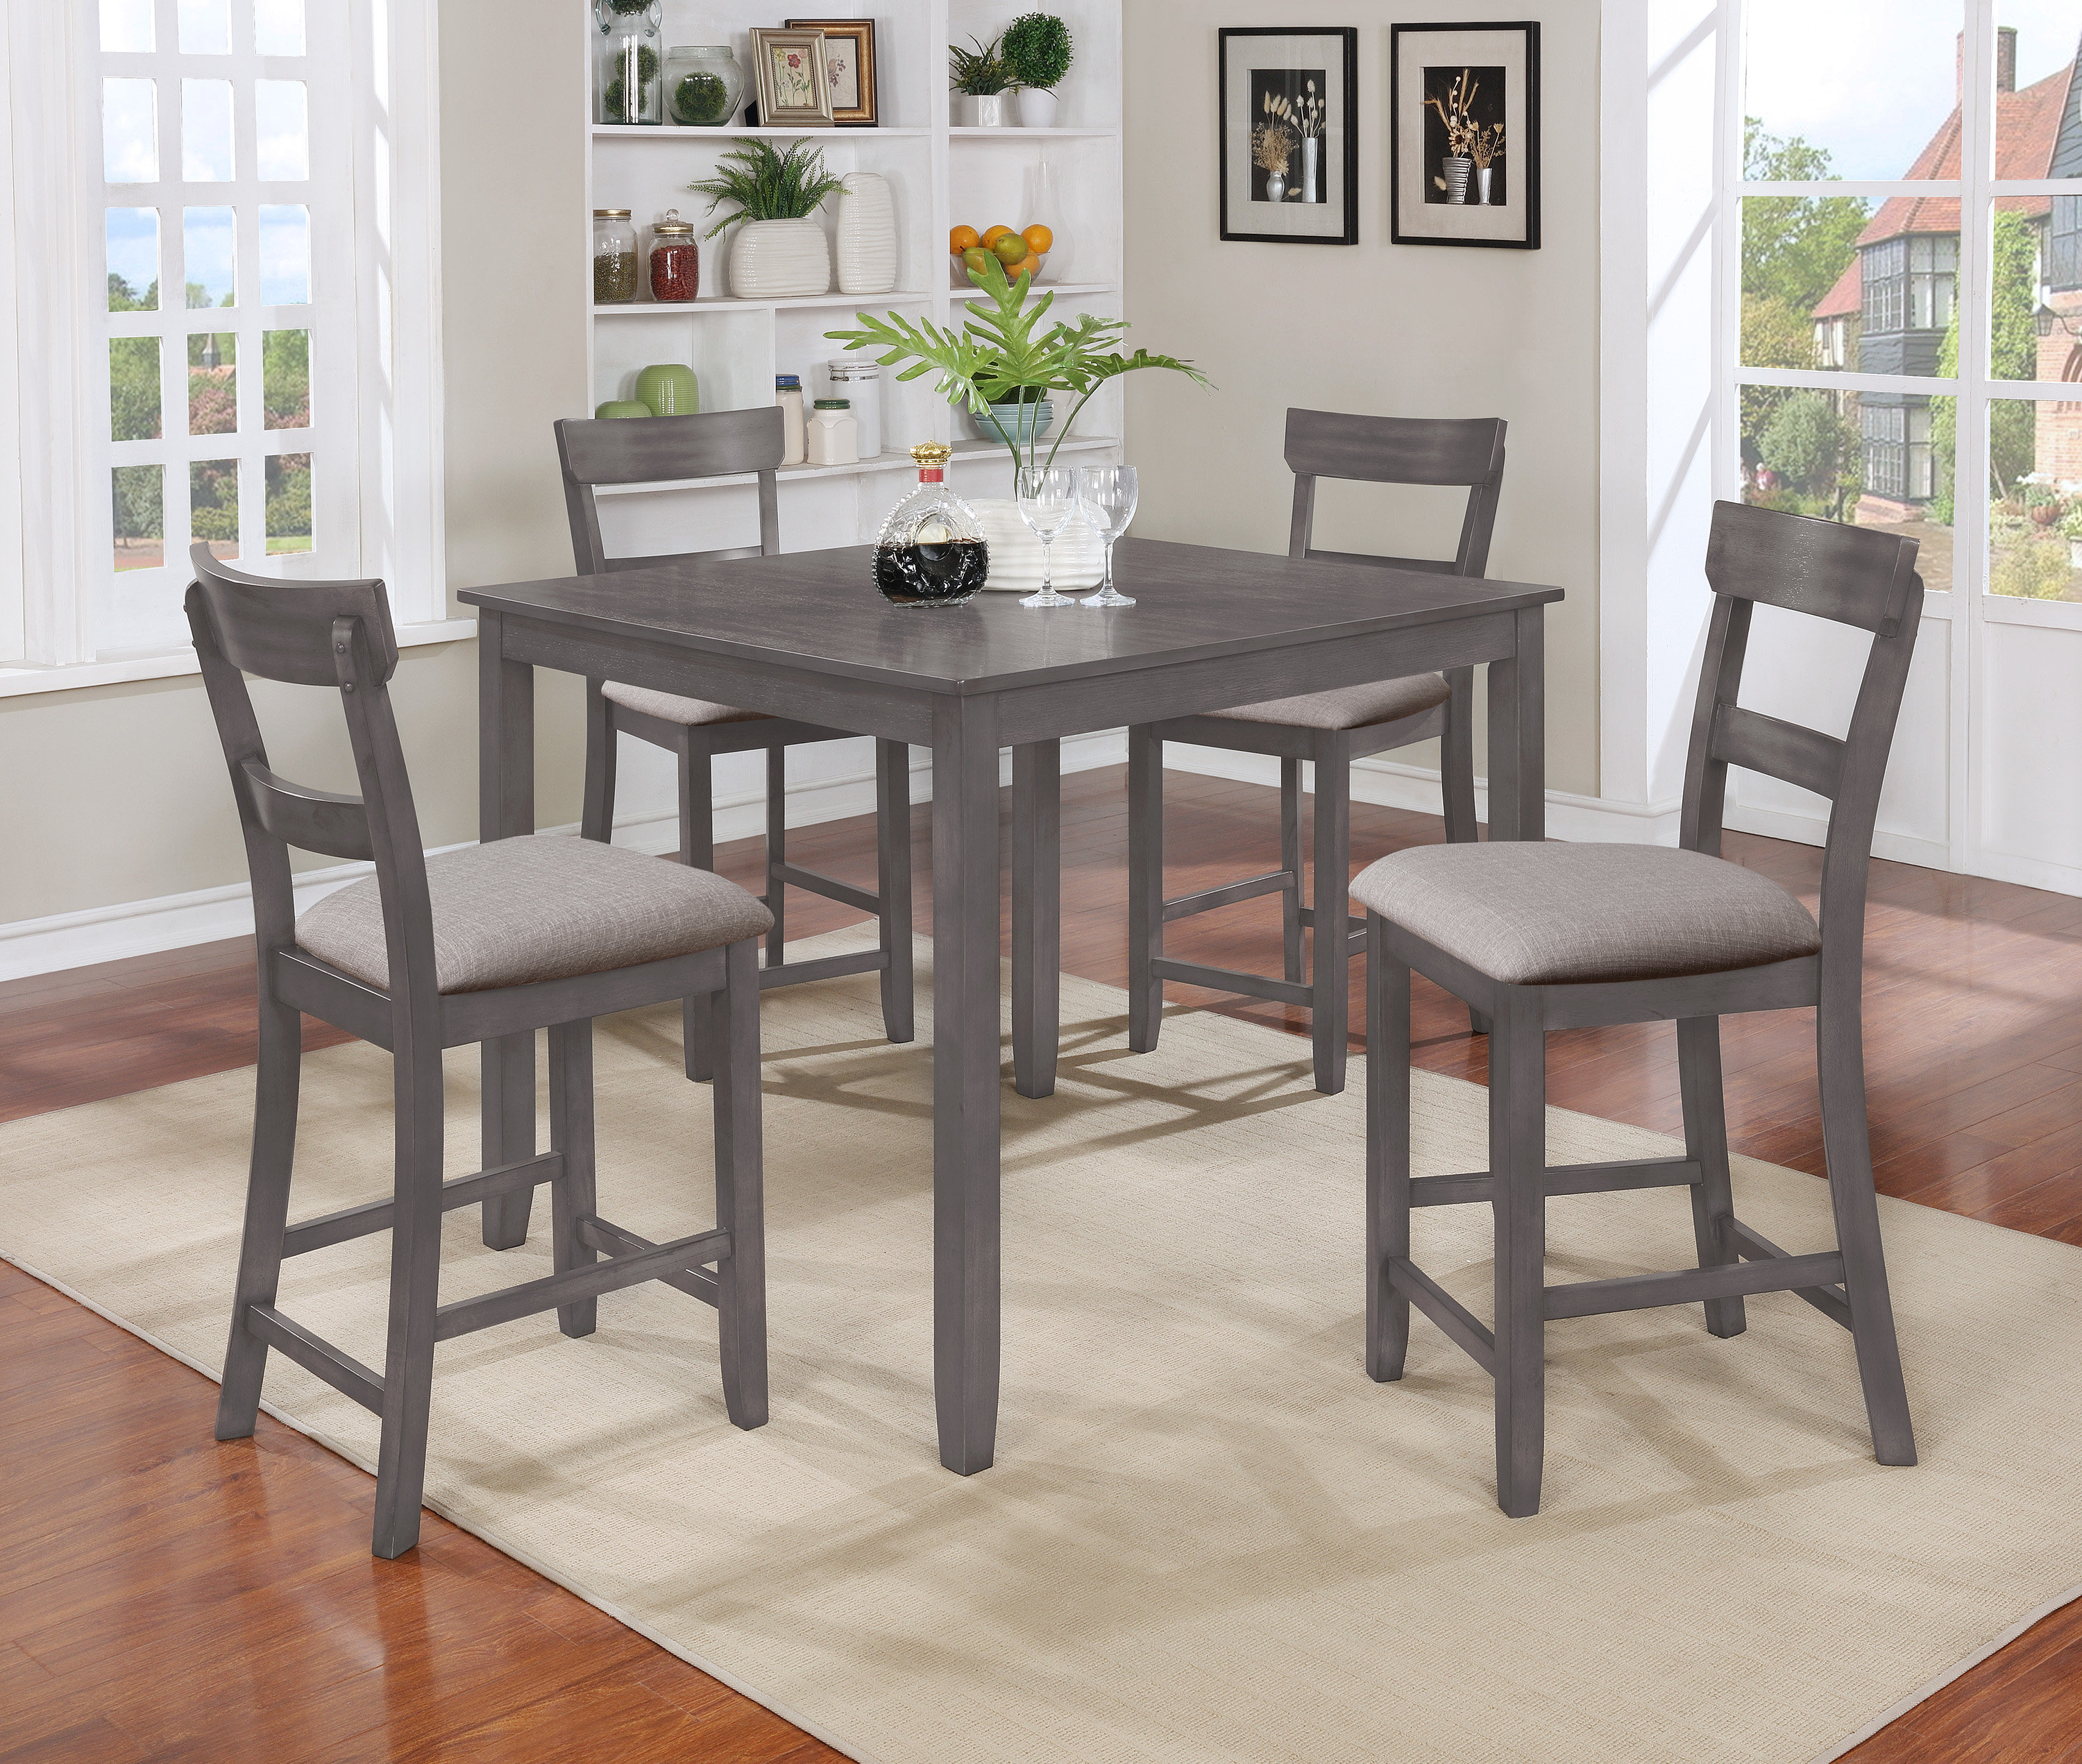 Joss & Main For 2019 Penelope 3 Piece Counter Height Wood Dining Sets (#5 of 20)